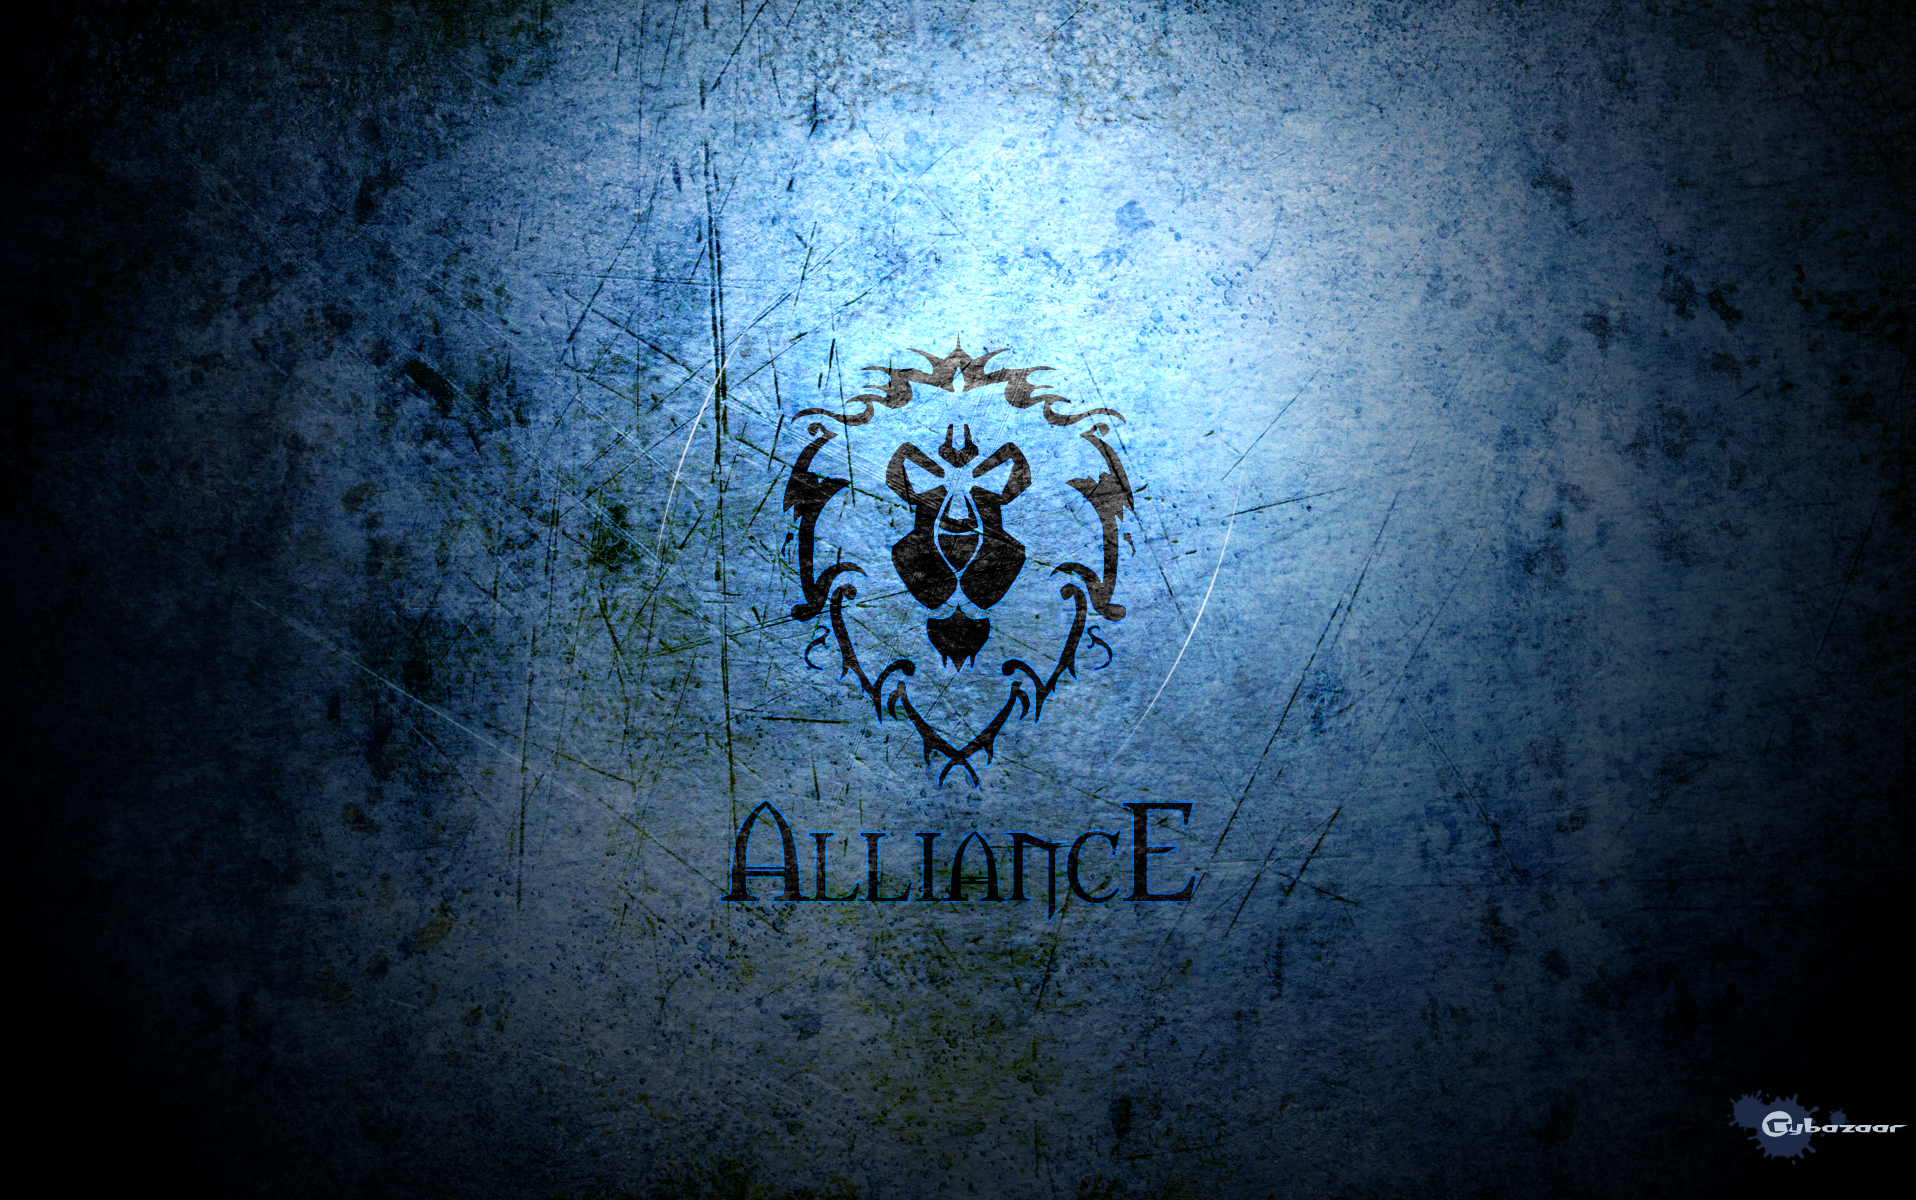 50 World Of Warcraft Alliance Wallpaper On Wallpapersafari